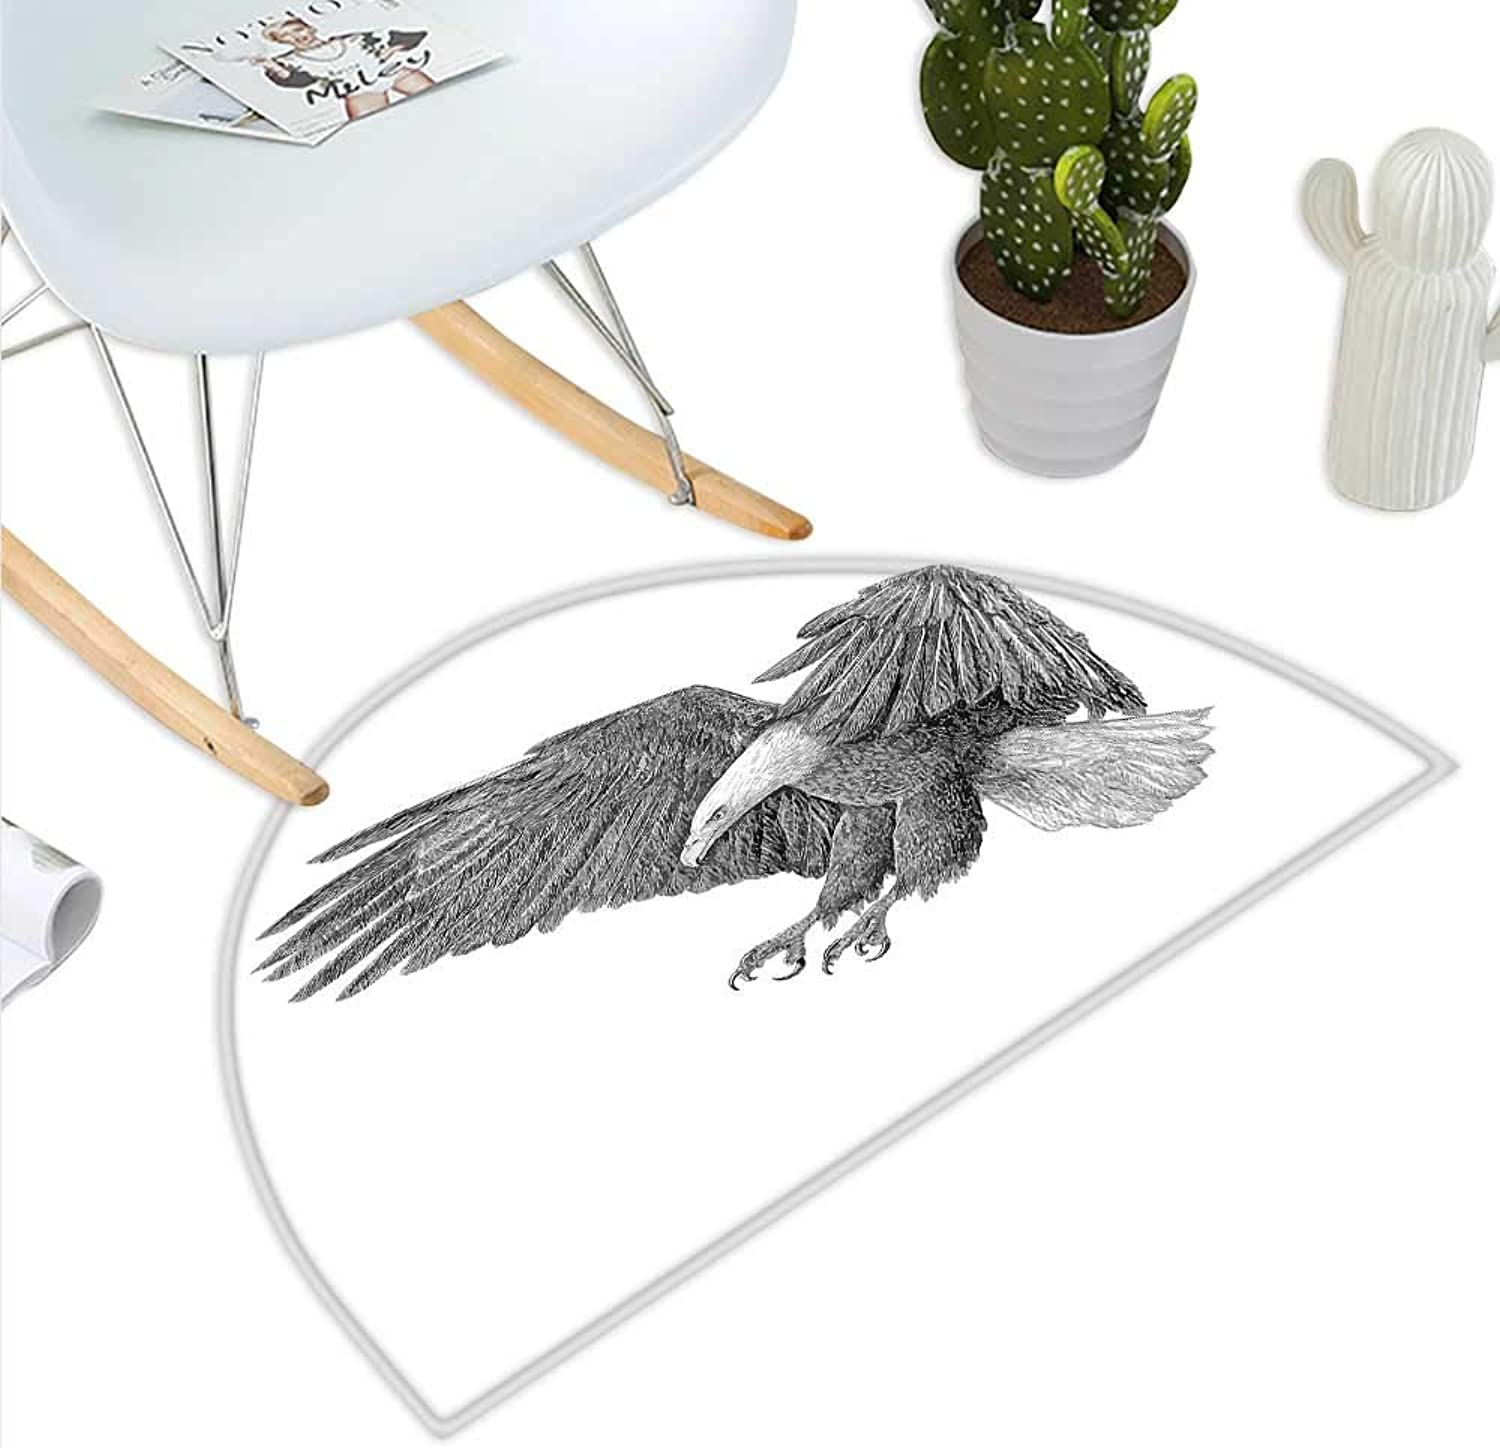 Eagle Semicircle Doormat Black and White Pencil Drawing Style Eagle with Detailed Features Wild Nature Halfmoon doormats H 35.4  xD 53.1  Black Grey White